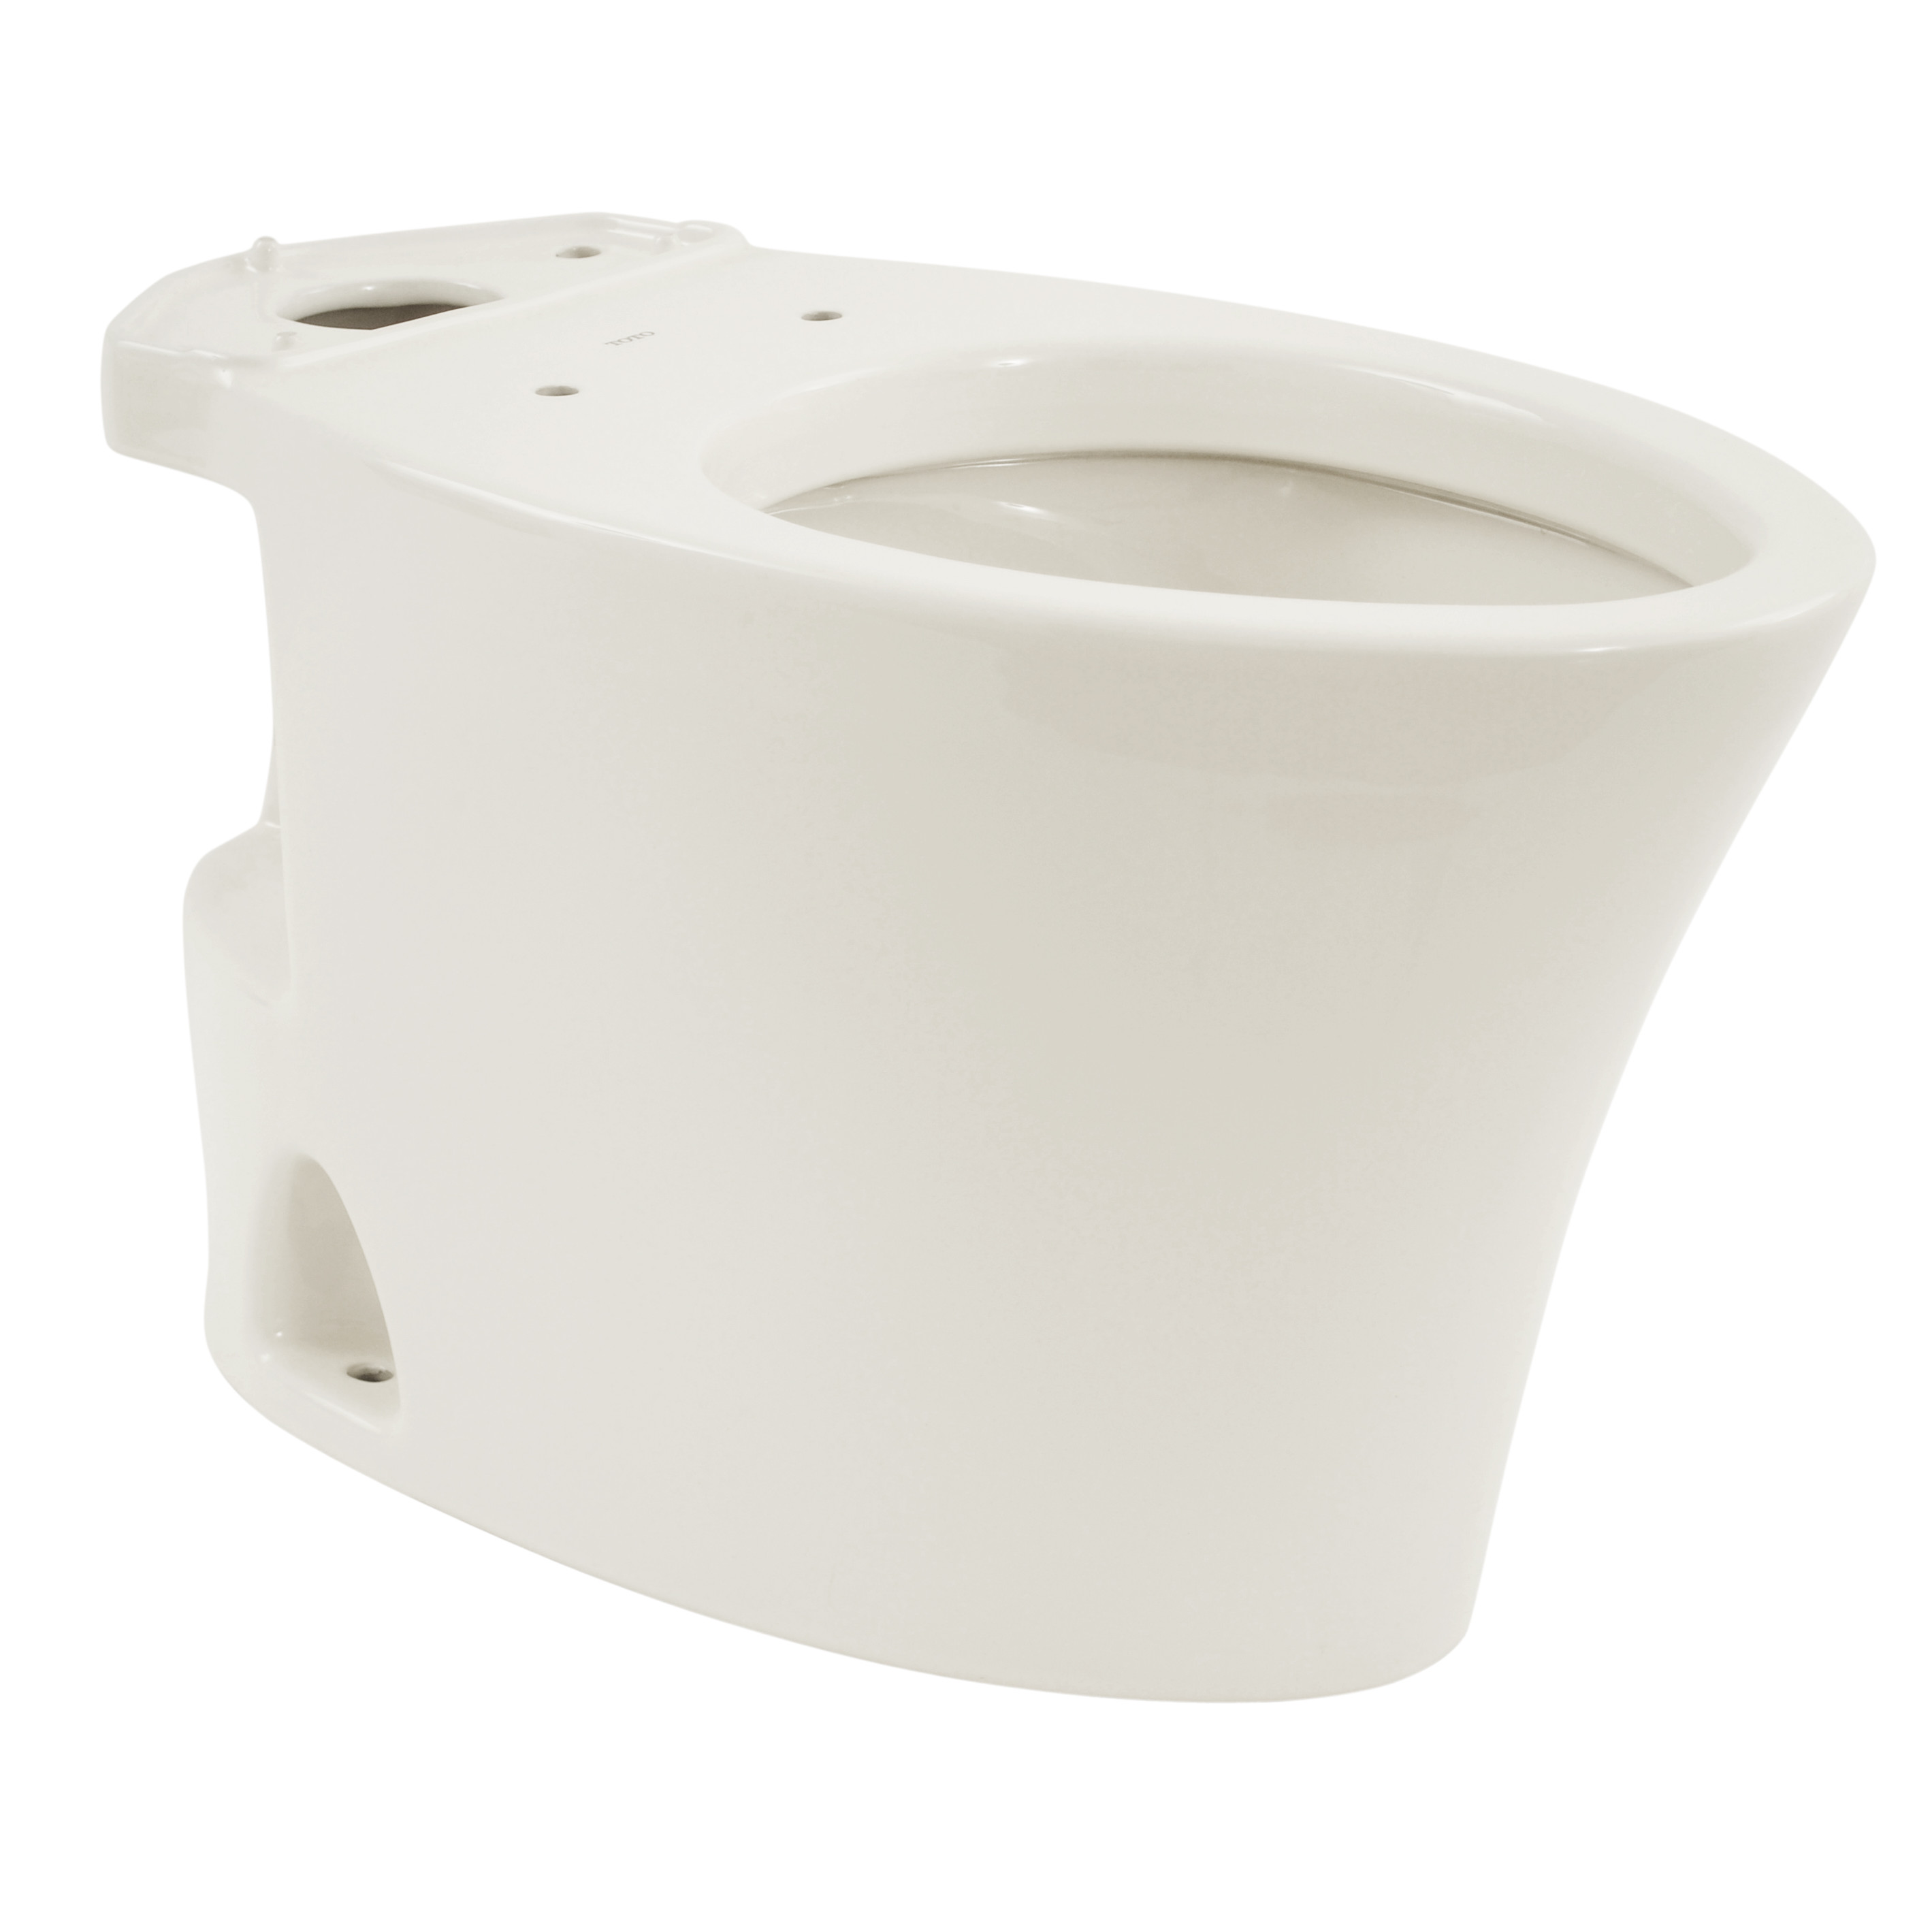 High End Toilets | Toto Toilet | Toto Bidet Toilets